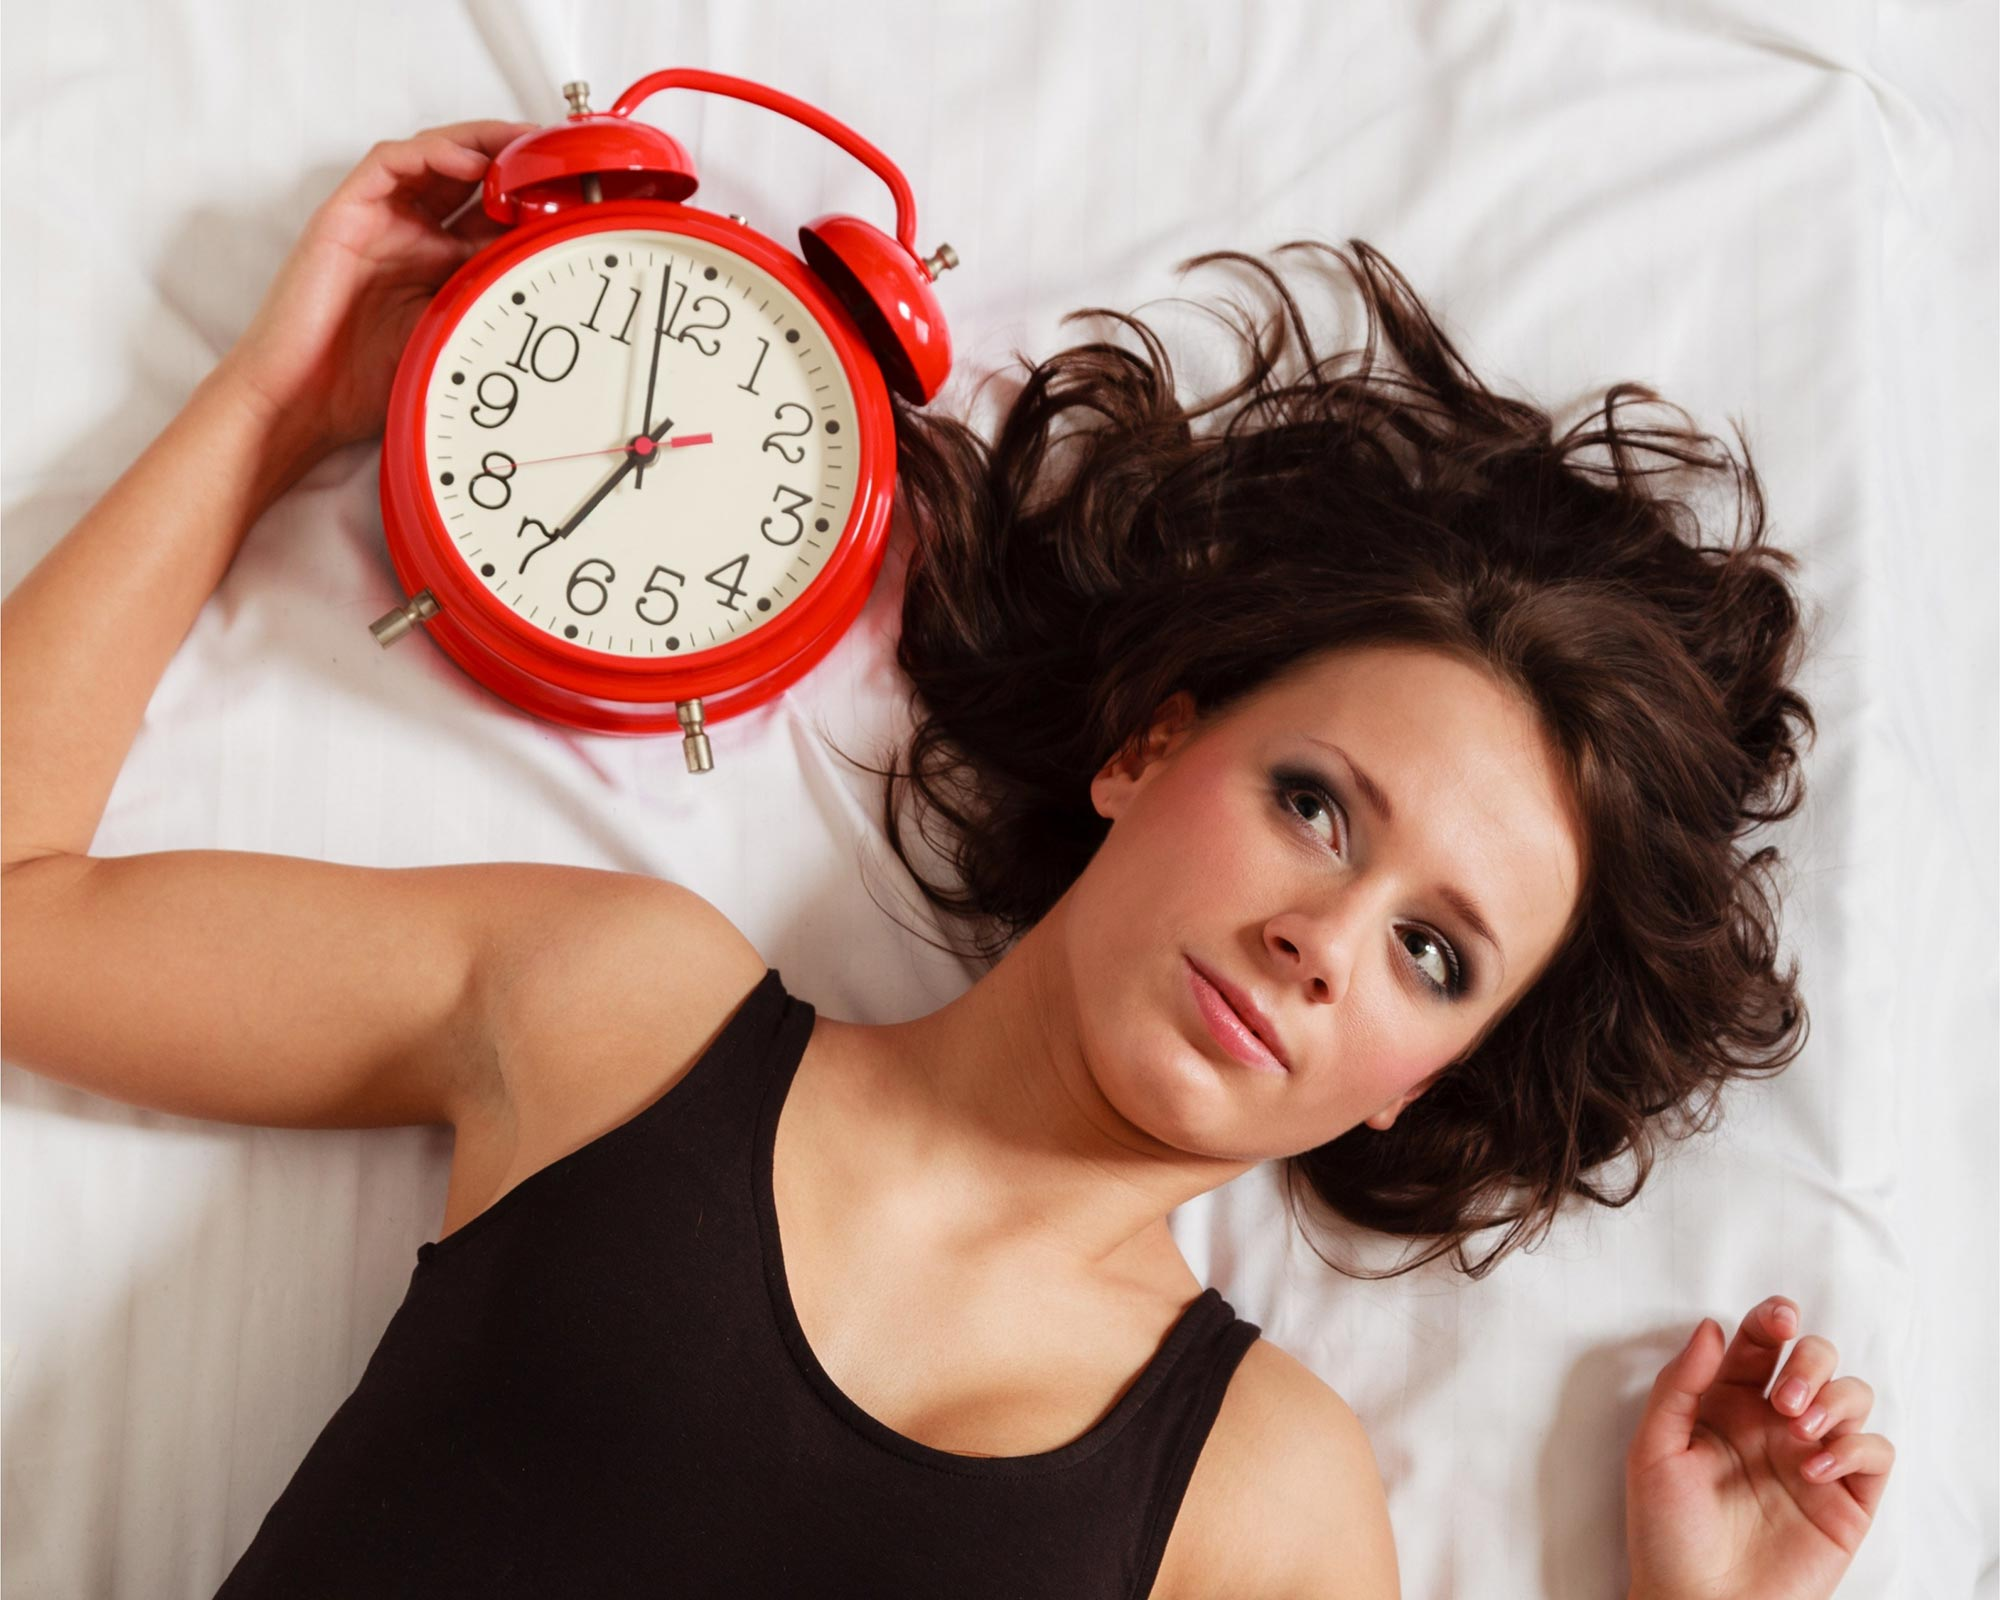 Defying Your Natural Body Clock Linked to Depression and Lower Wellbeing